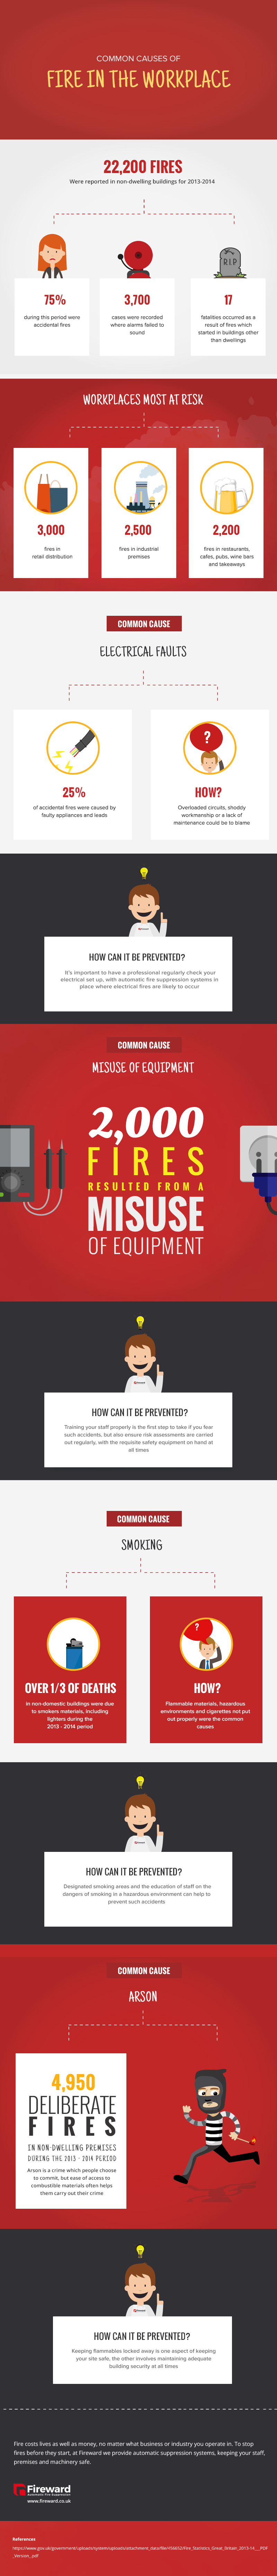 Common Causes of Fire in the Workplace by Fireward